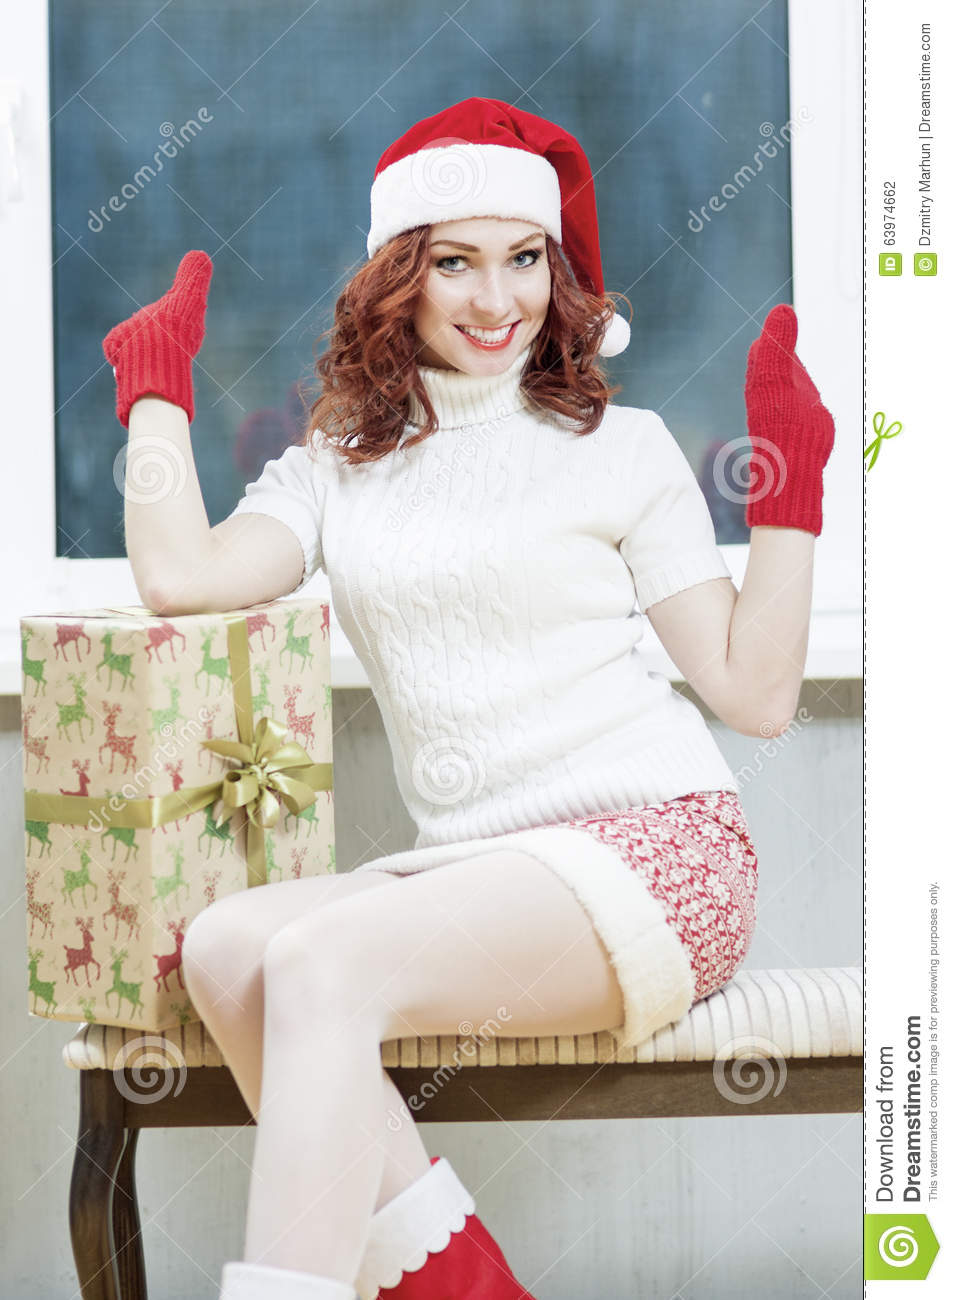 Christmas, New Year, X-Mas Concepts and Celebrations. Young Caucasian Santa Helper Girl With Big Present Box. Posing as Snow Maid